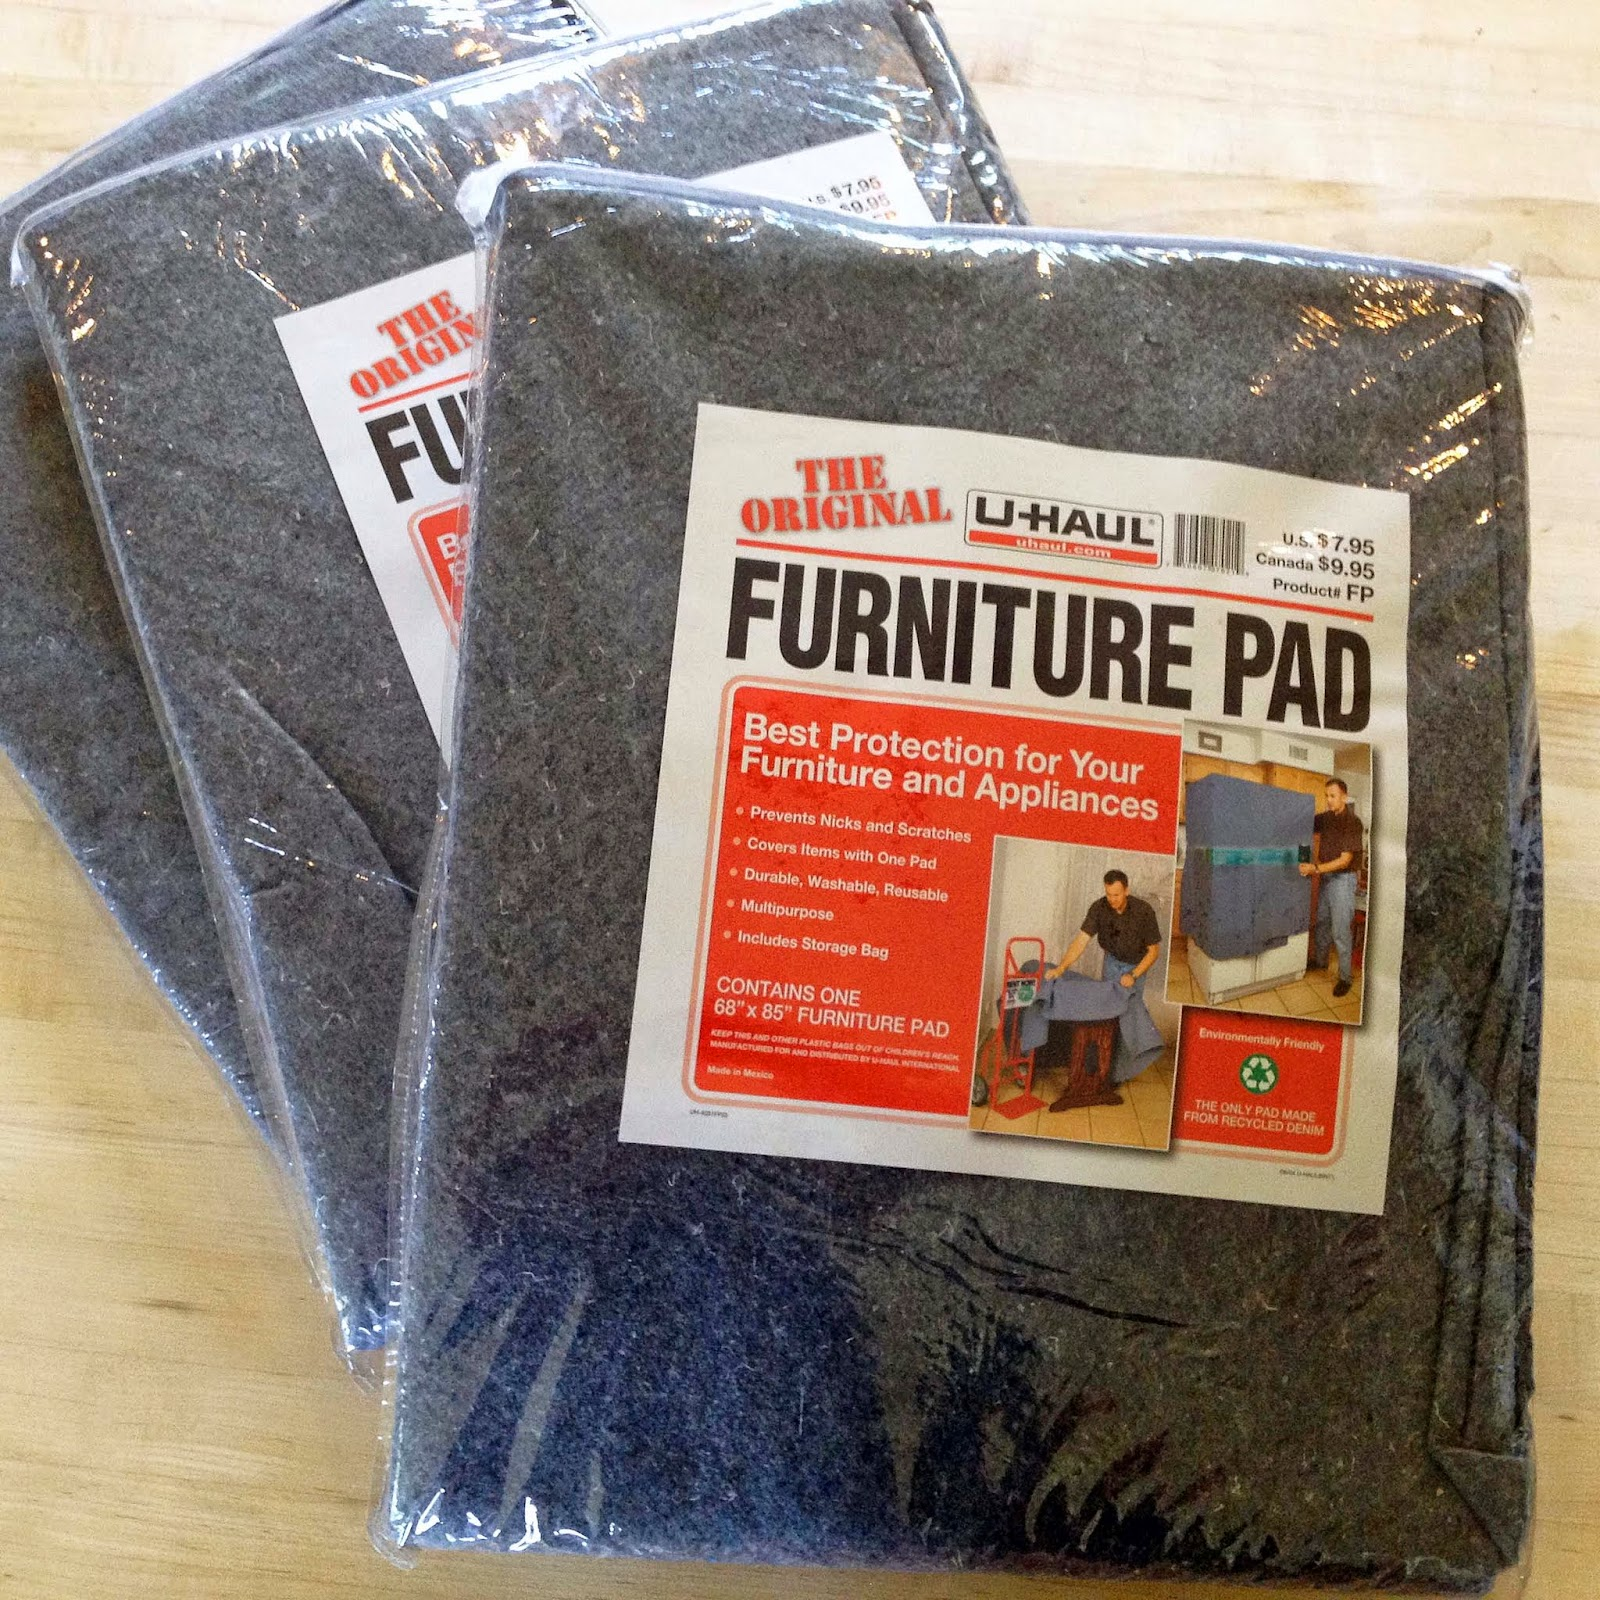 U-Haul Furniture Pads in Packaging